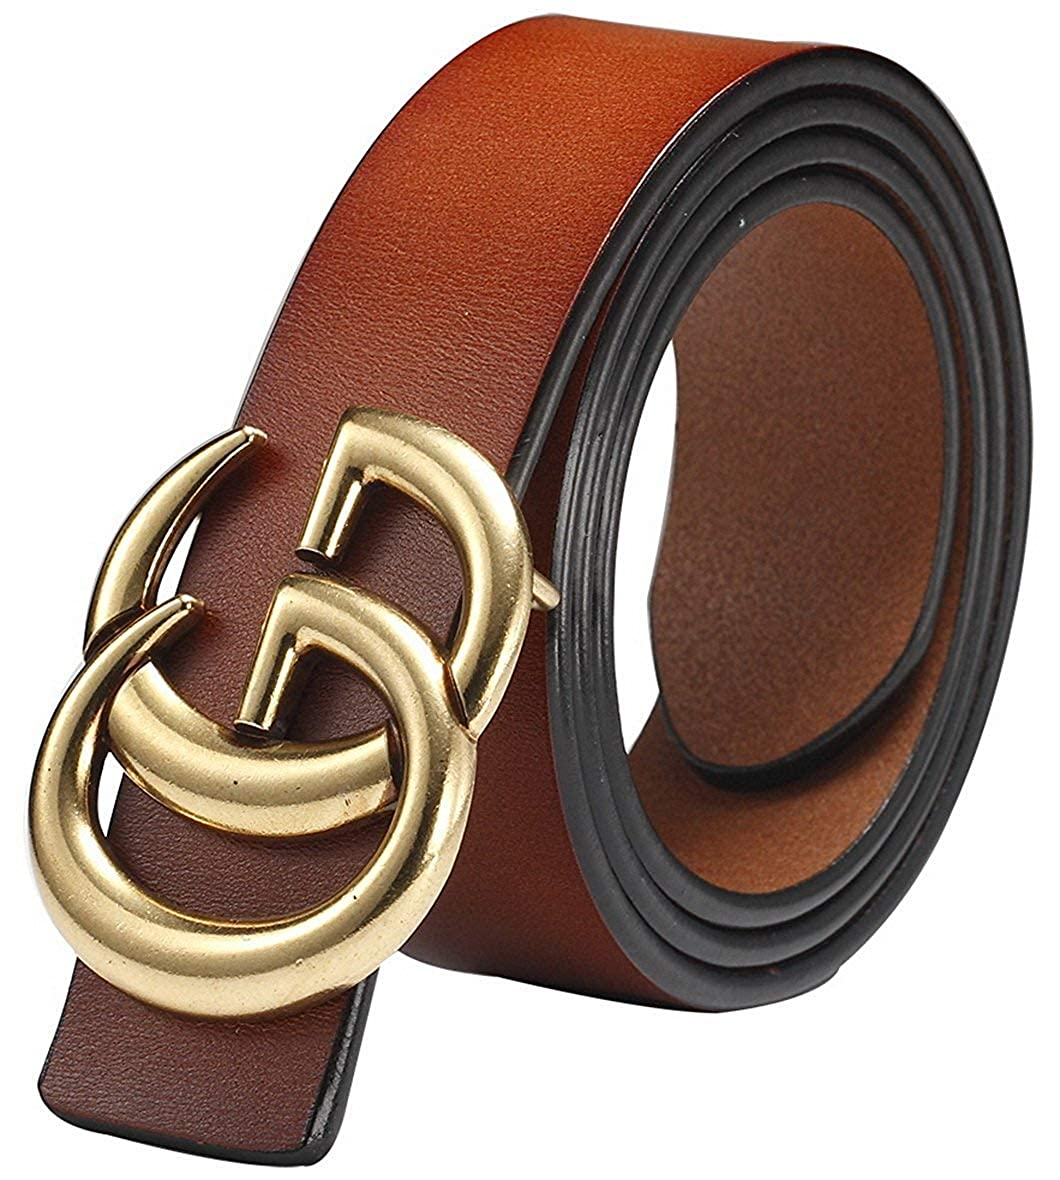 b6ce84c2448 GG Women s Genuine Leather Retro Vintage Dress Belts for Jeans with Letter  Buckle at Amazon Women s Clothing store